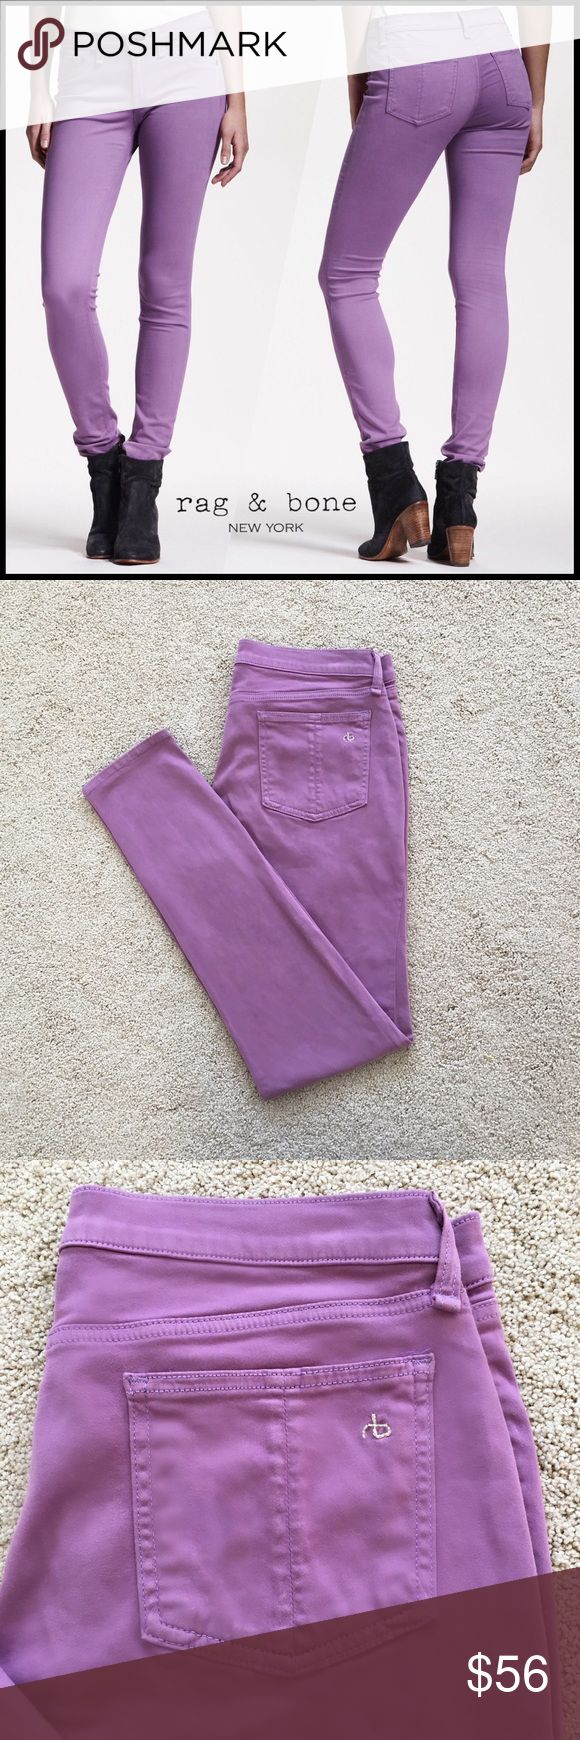 """Rag & Bone Plush Twill Legging Jeans in Violet Rag & Bone plush stretch twill legging jeans  Slim, polished profile Violet (a light lilac purple) Stretch twill; jegging / leggings skinny fit 5-pocket style; Rag & Bone logo stitching on back pocket Cotton/modal/polyurethane  Size 30 Laying flat, unstretched, waist measures 16"""" inches across. Inseam 30.5"""". Bottom Leg 5"""".   Tiny mark on the right thigh (see pic 4). A dry cleaner could prob. get it out but I've never bothered bc it's so faint…"""